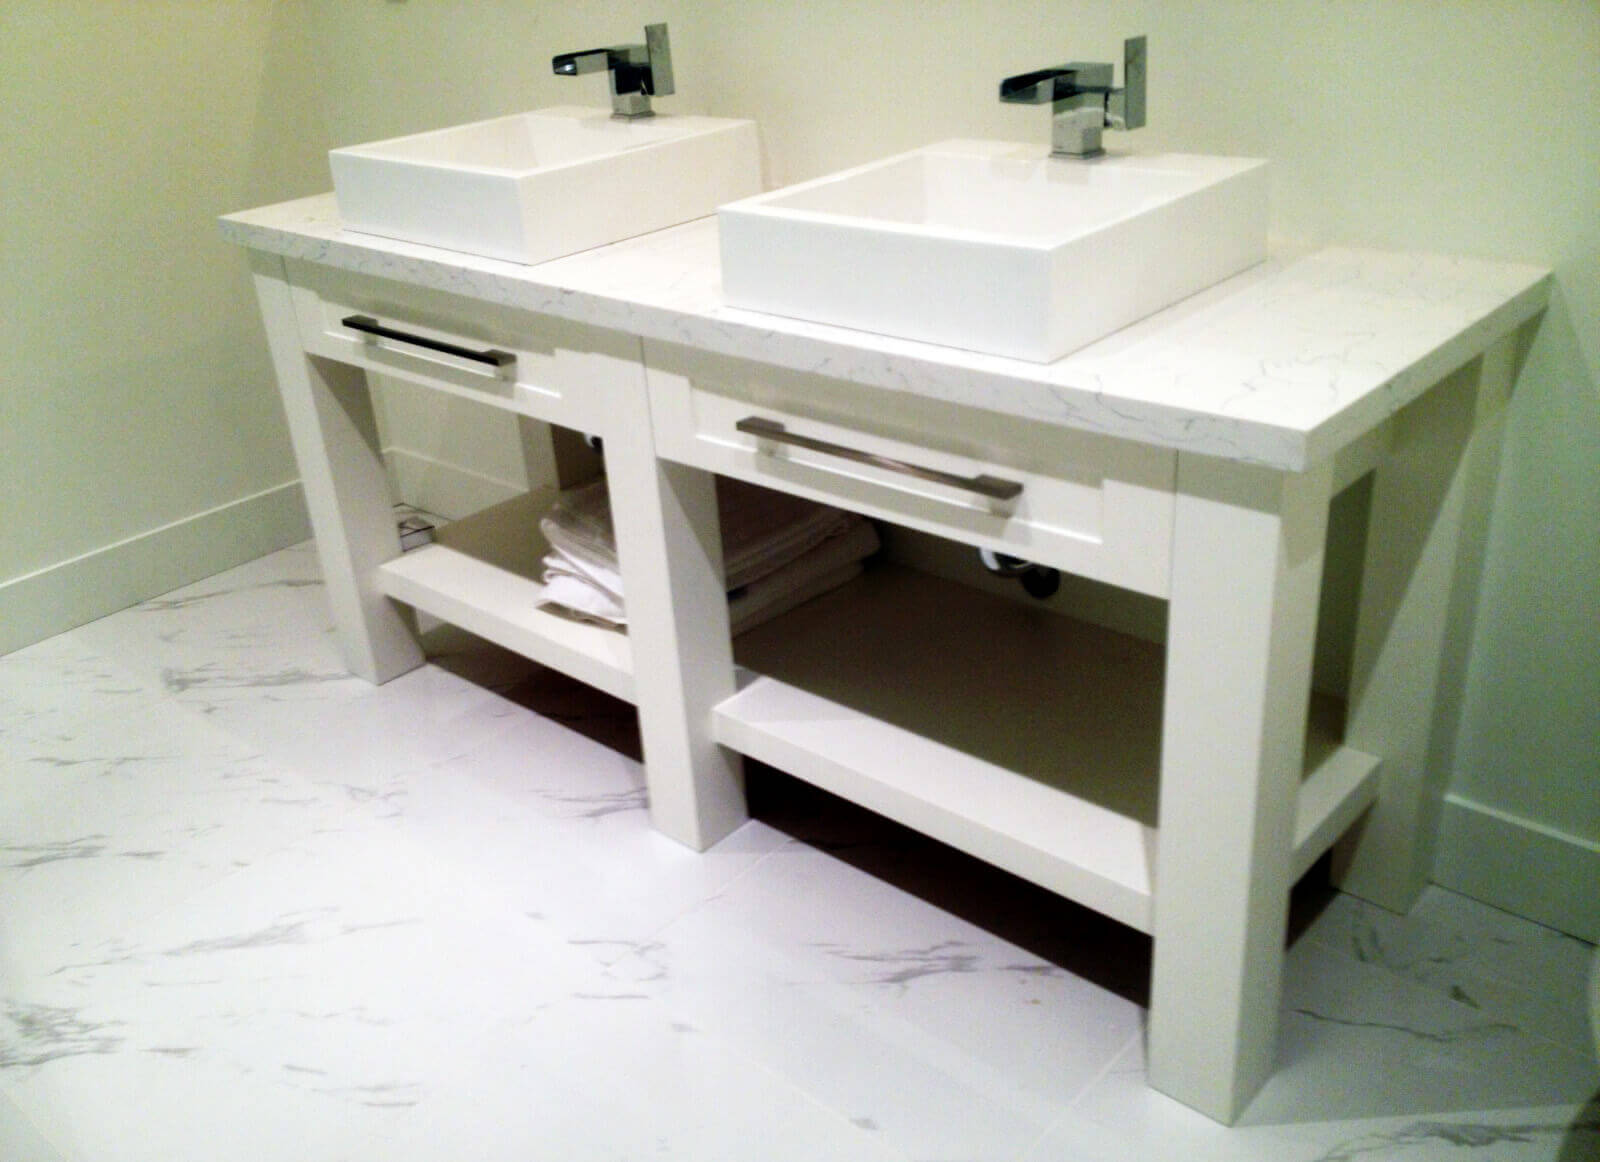 Bathroom Cabinets - Silver Touch Cabinets